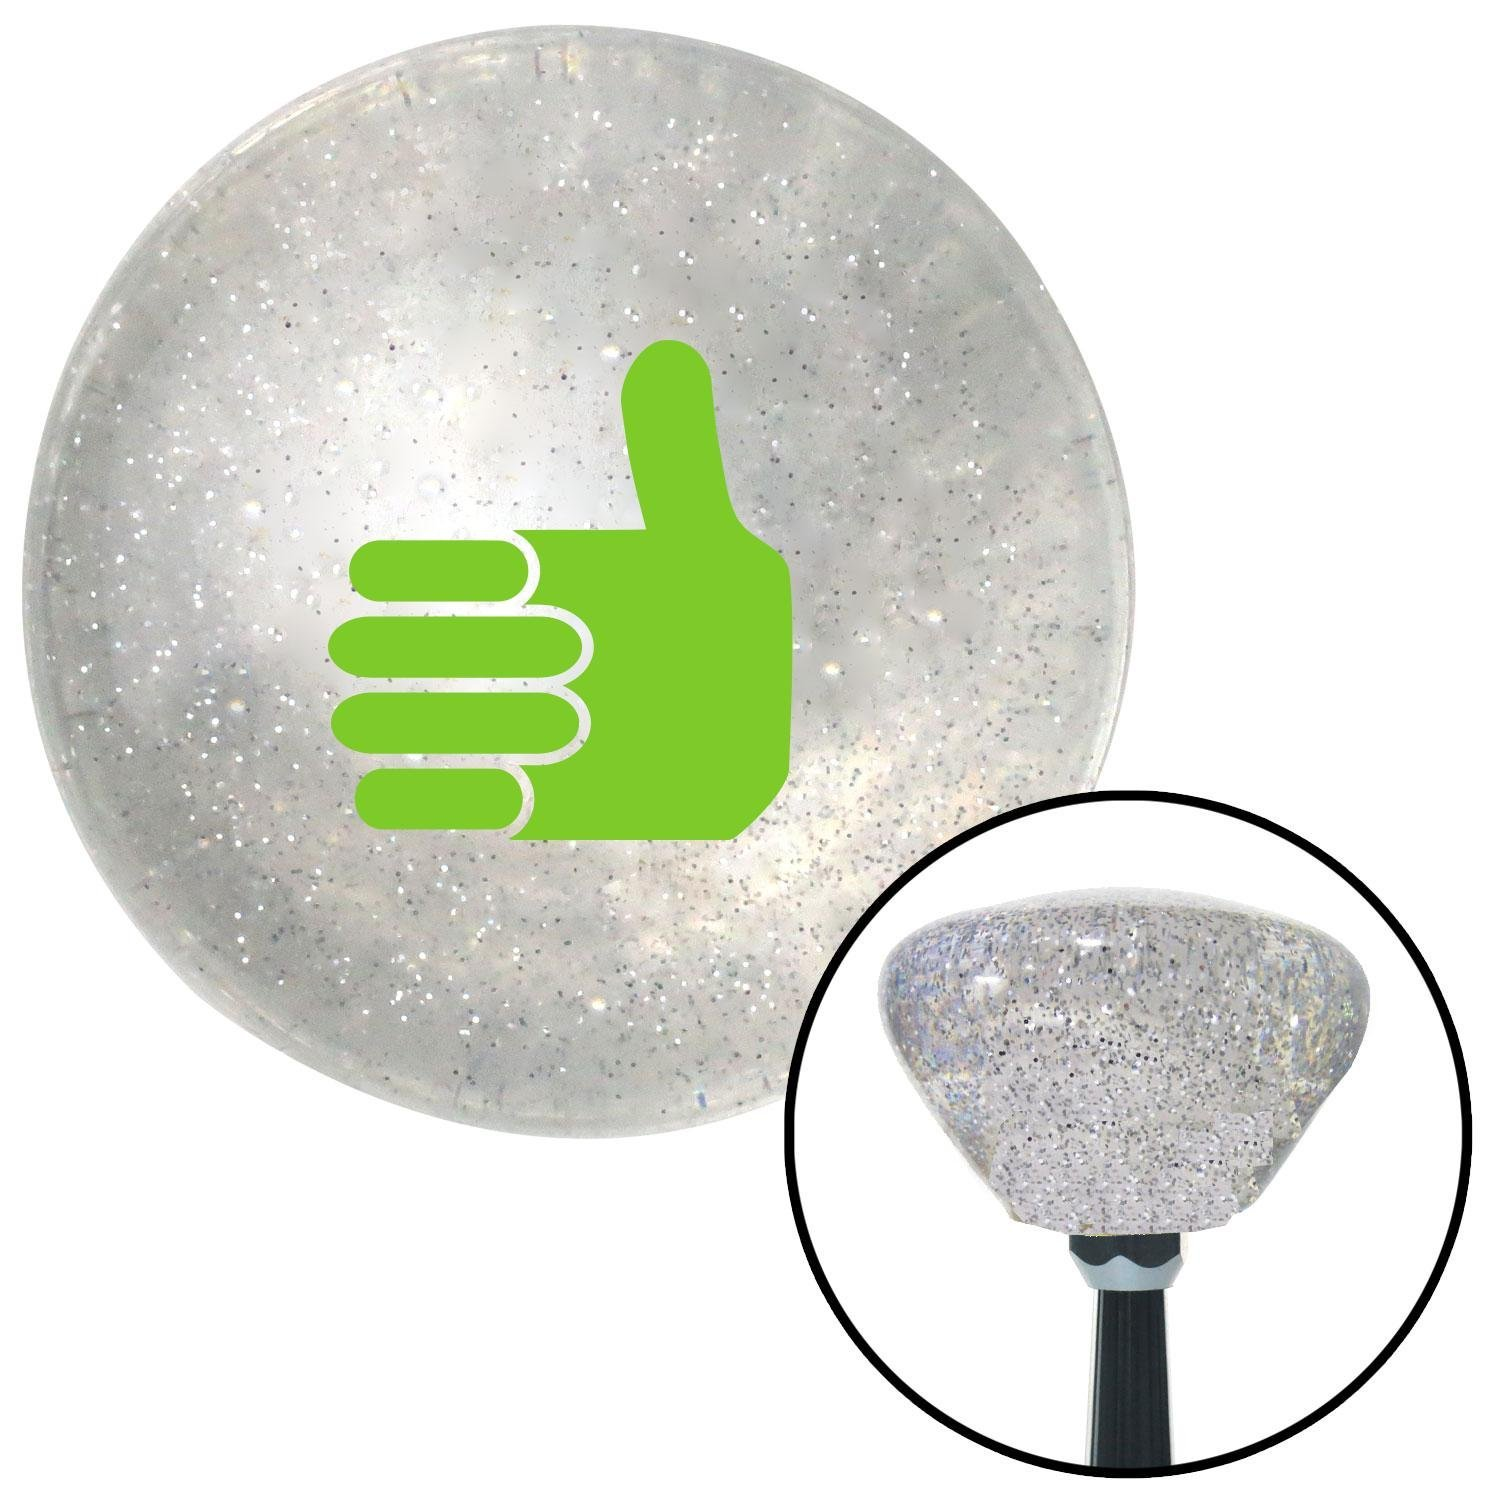 Green Thumbs Up American Shifter 160952 Clear Retro Metal Flake Shift Knob with M16 x 1.5 Insert